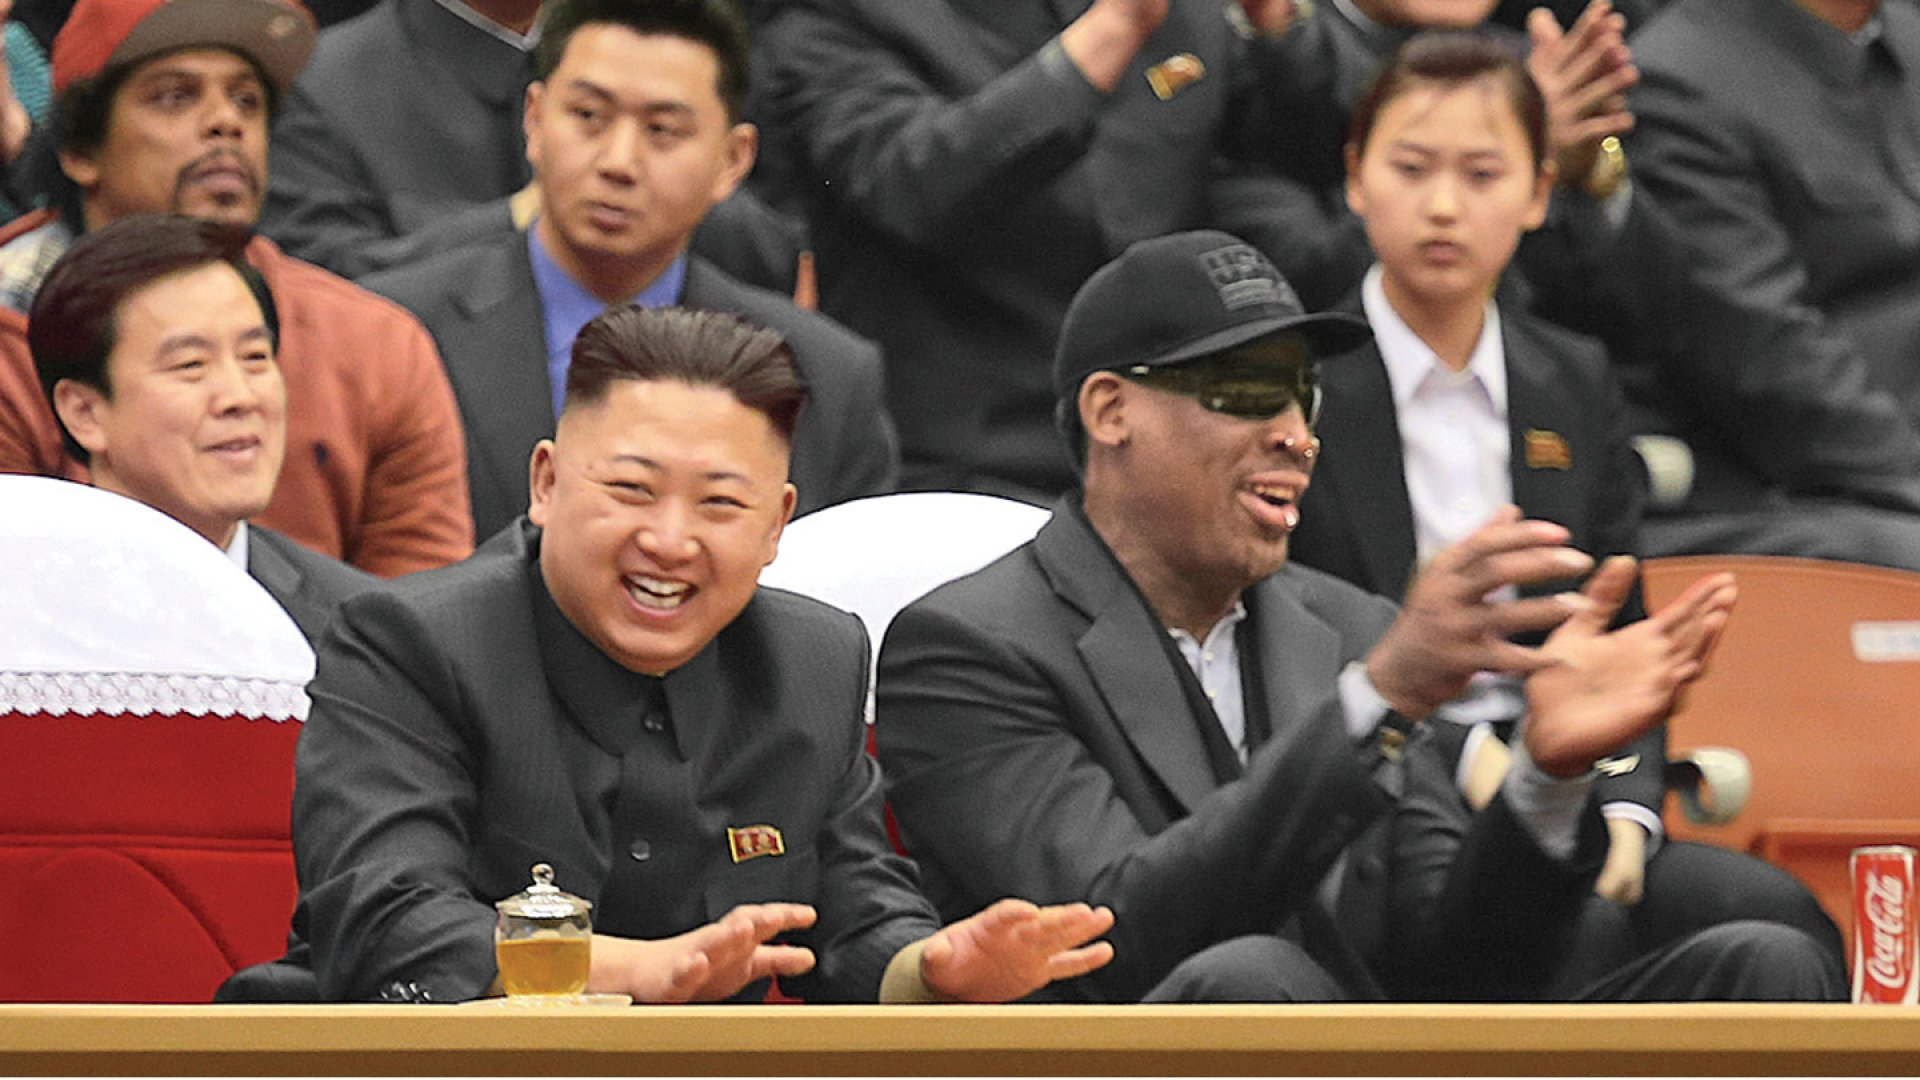 <strong>ODD COUPLE</strong> Freelance diplomat Dennis Rodman enjoys some hoops with North Korea's Supreme Leader, Kim Jong-un.